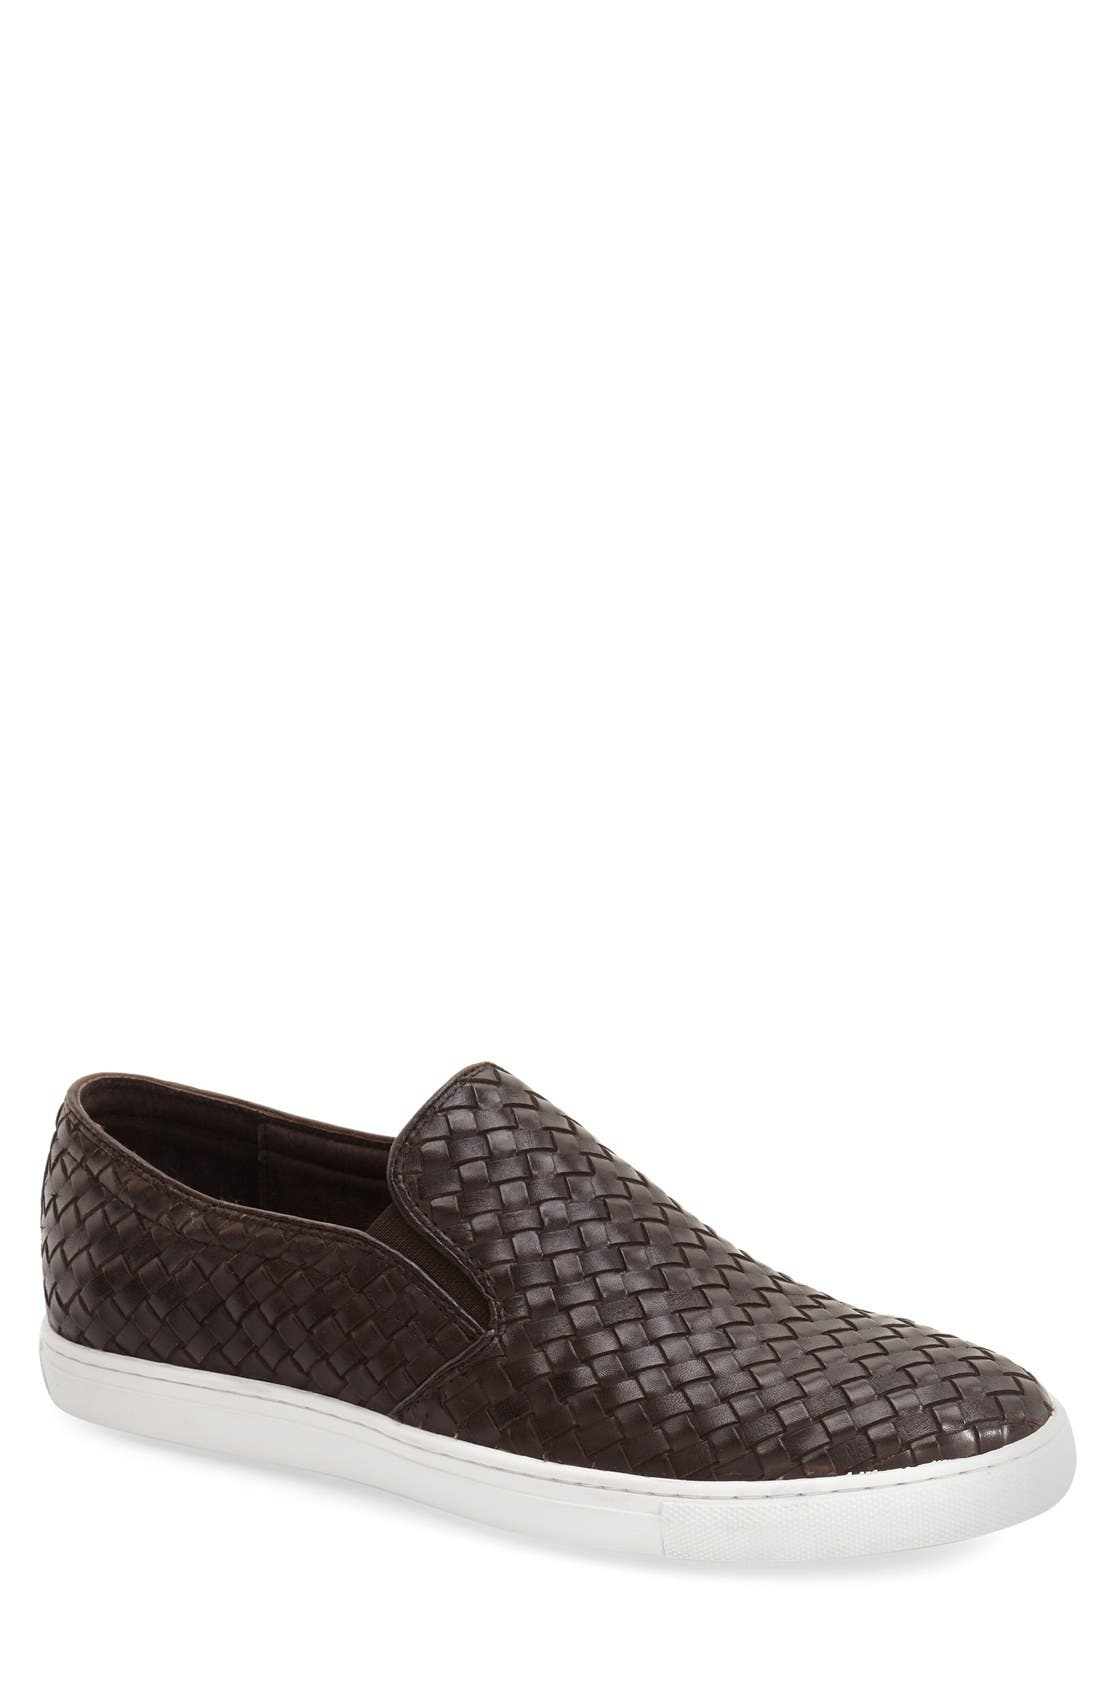 ZANZARA 'Buzz' Slip-On Sneaker